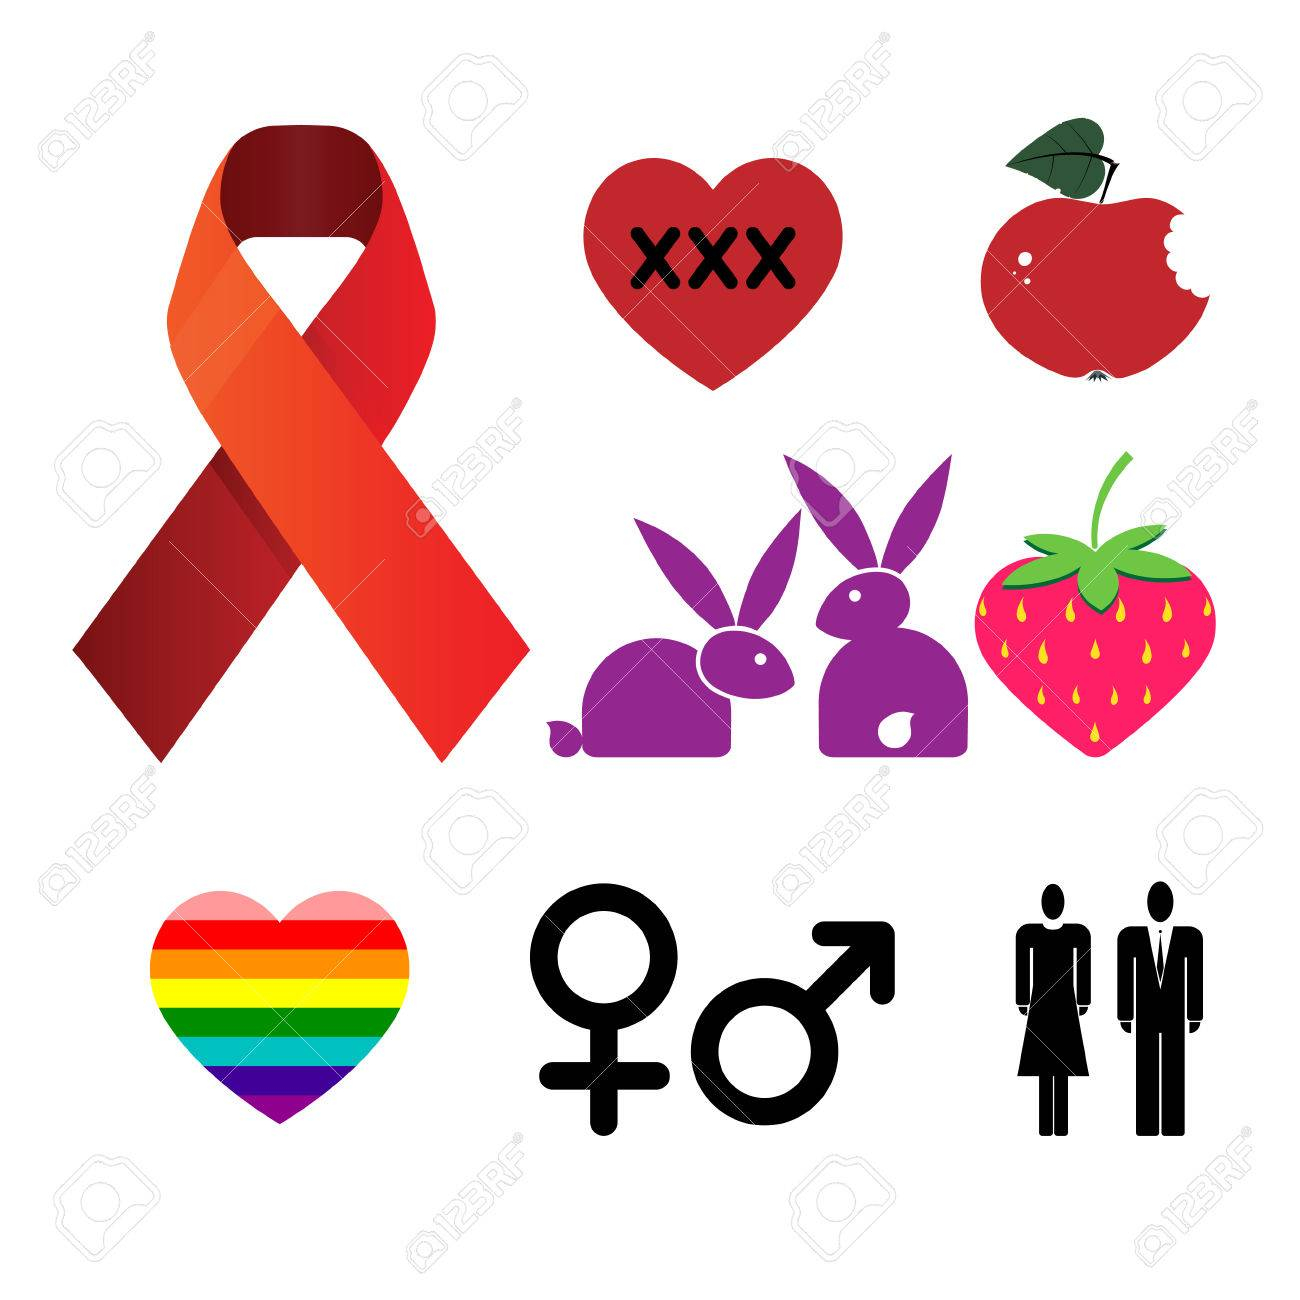 Set symbols with a heart on social issues. Stock Vector - 8591640